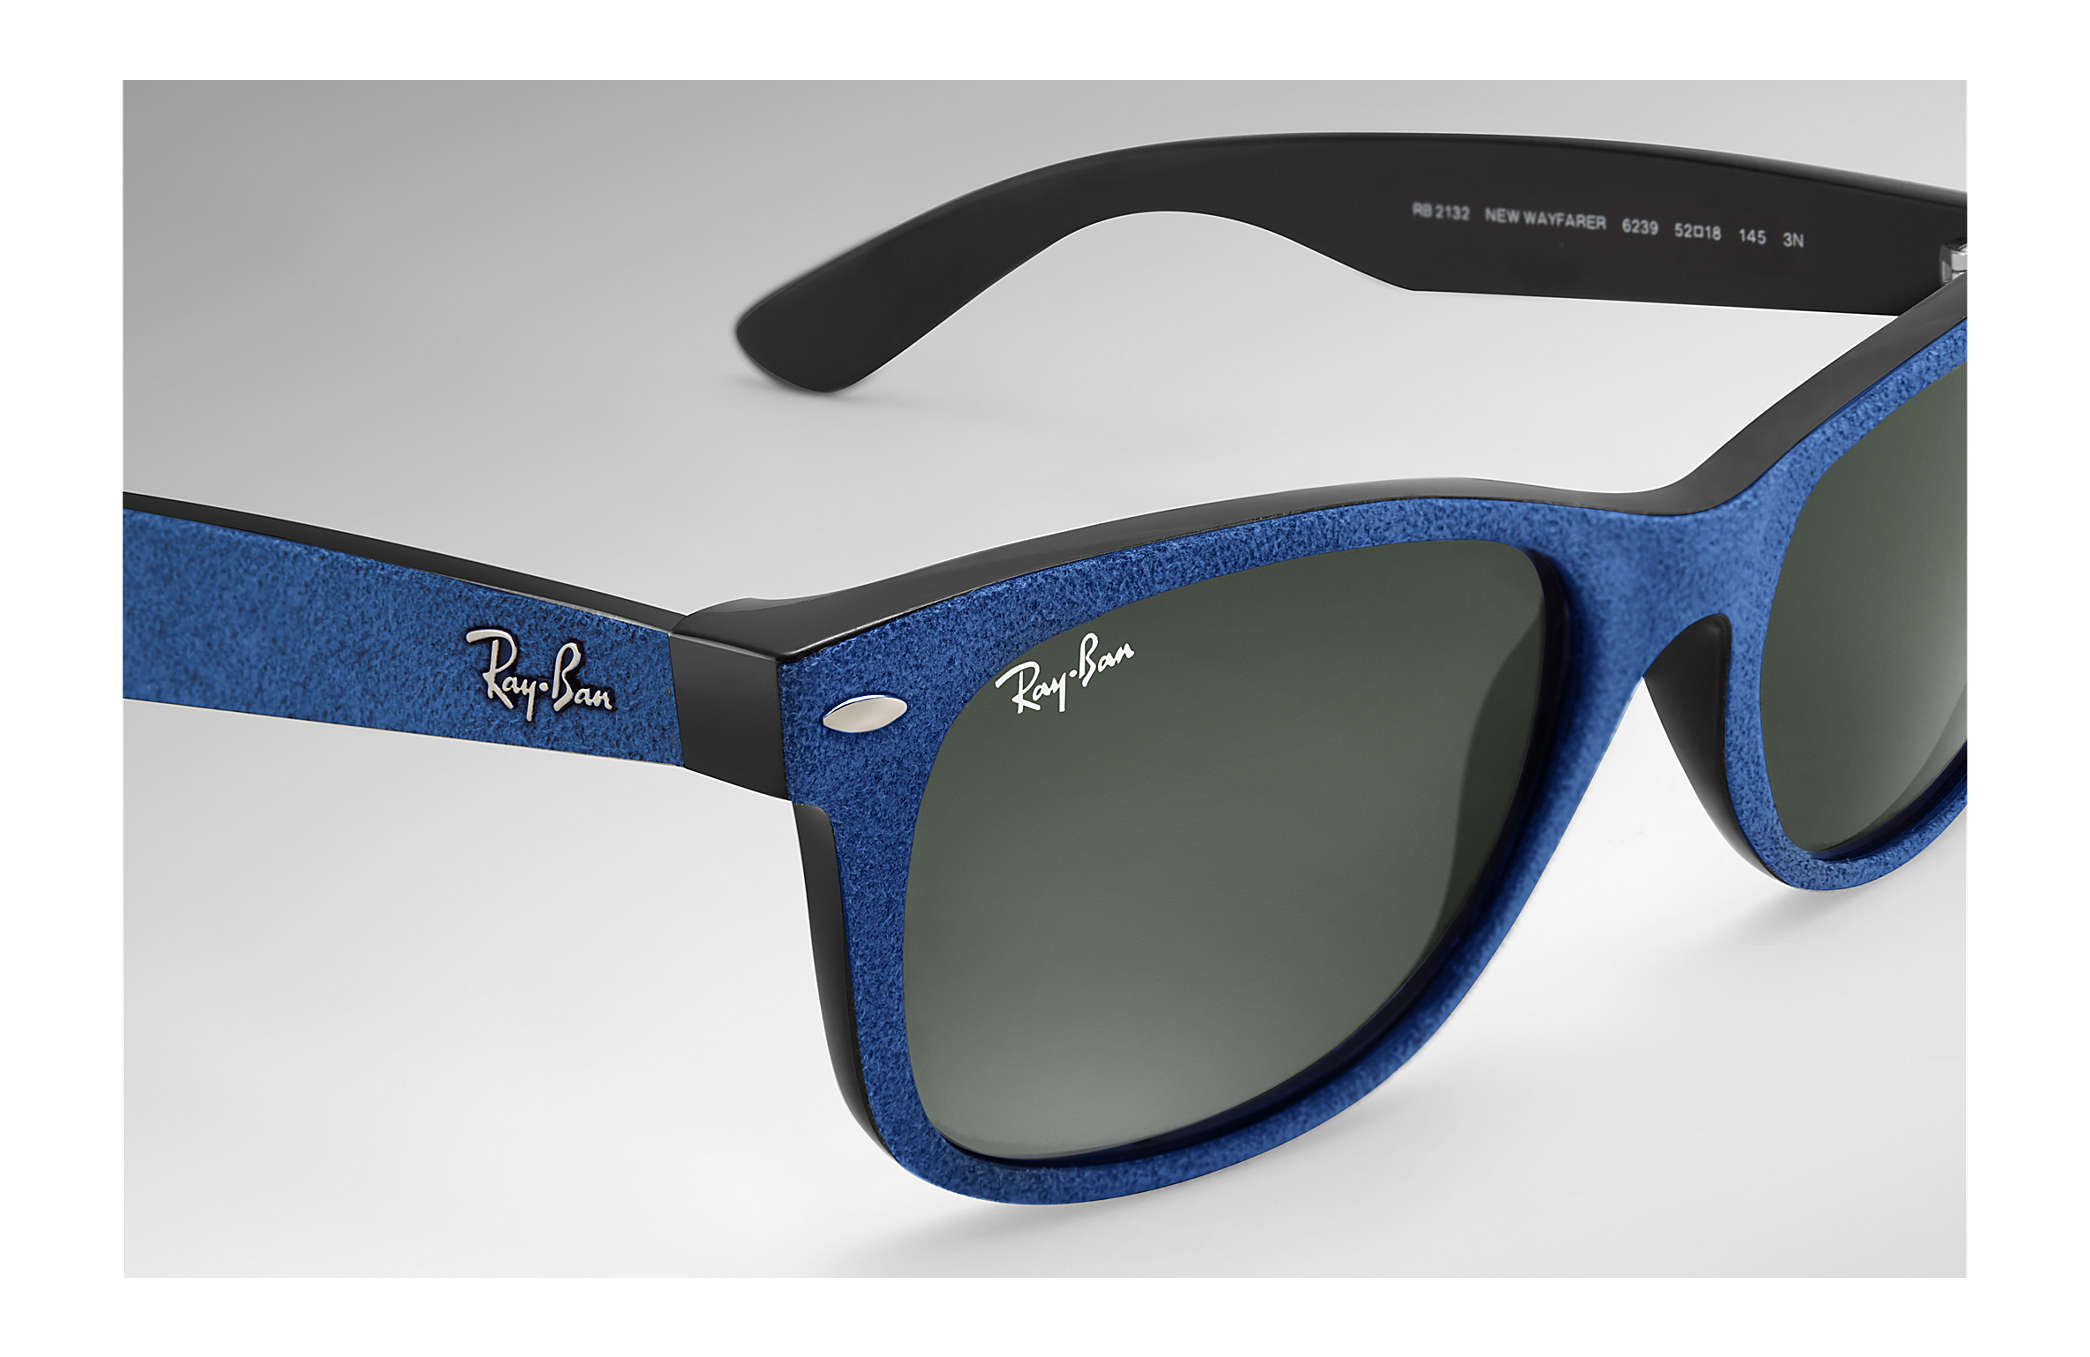 cb54caeb65 Ray-Ban New Wayfarer With Alcantara® RB2132 Blue - Nylon - Green ...